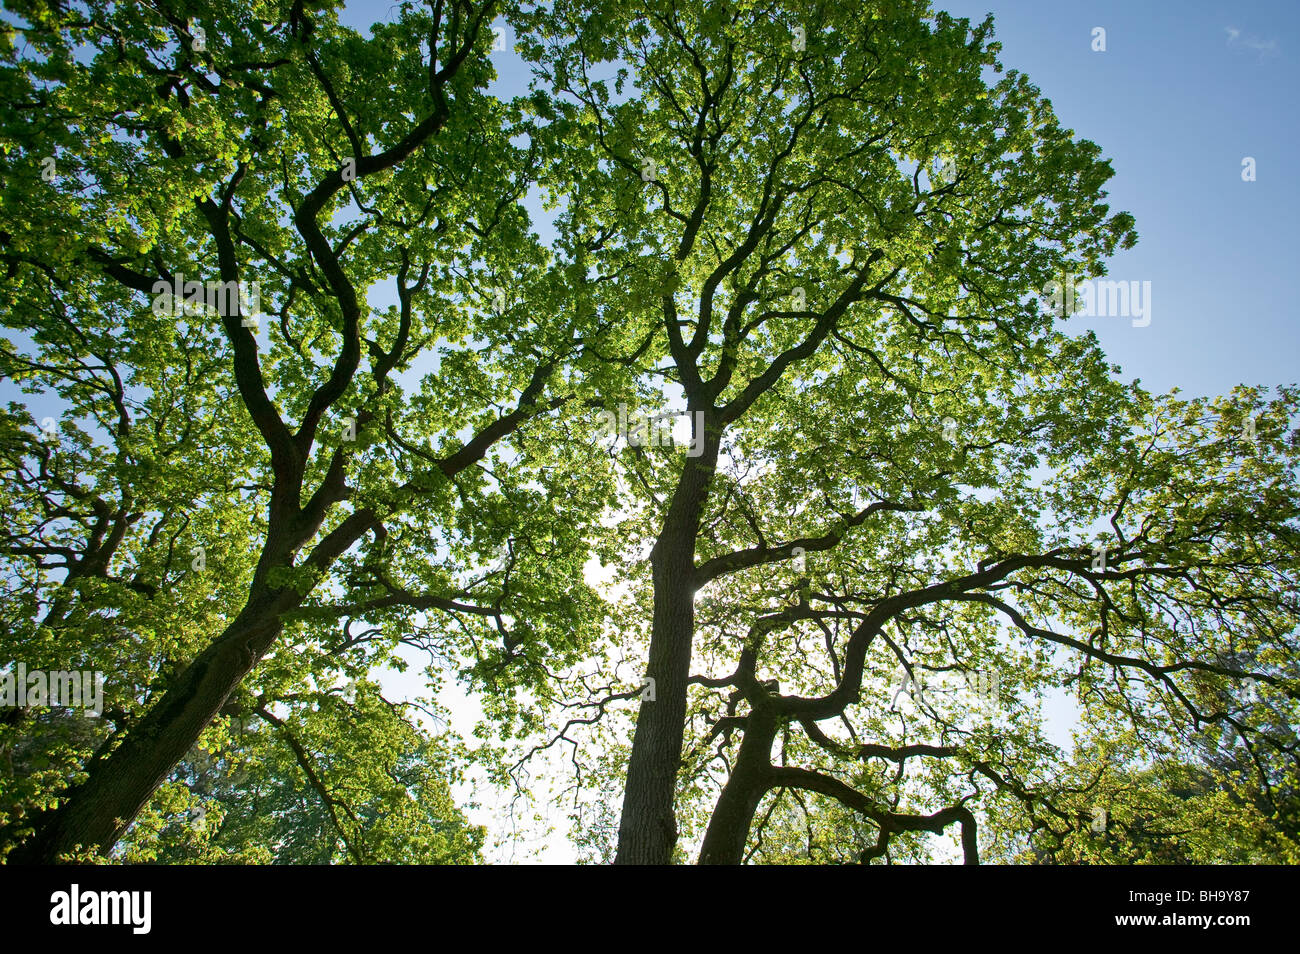 Trees in springtime, Parc de Bagatelle, Paris, France Stock Photo